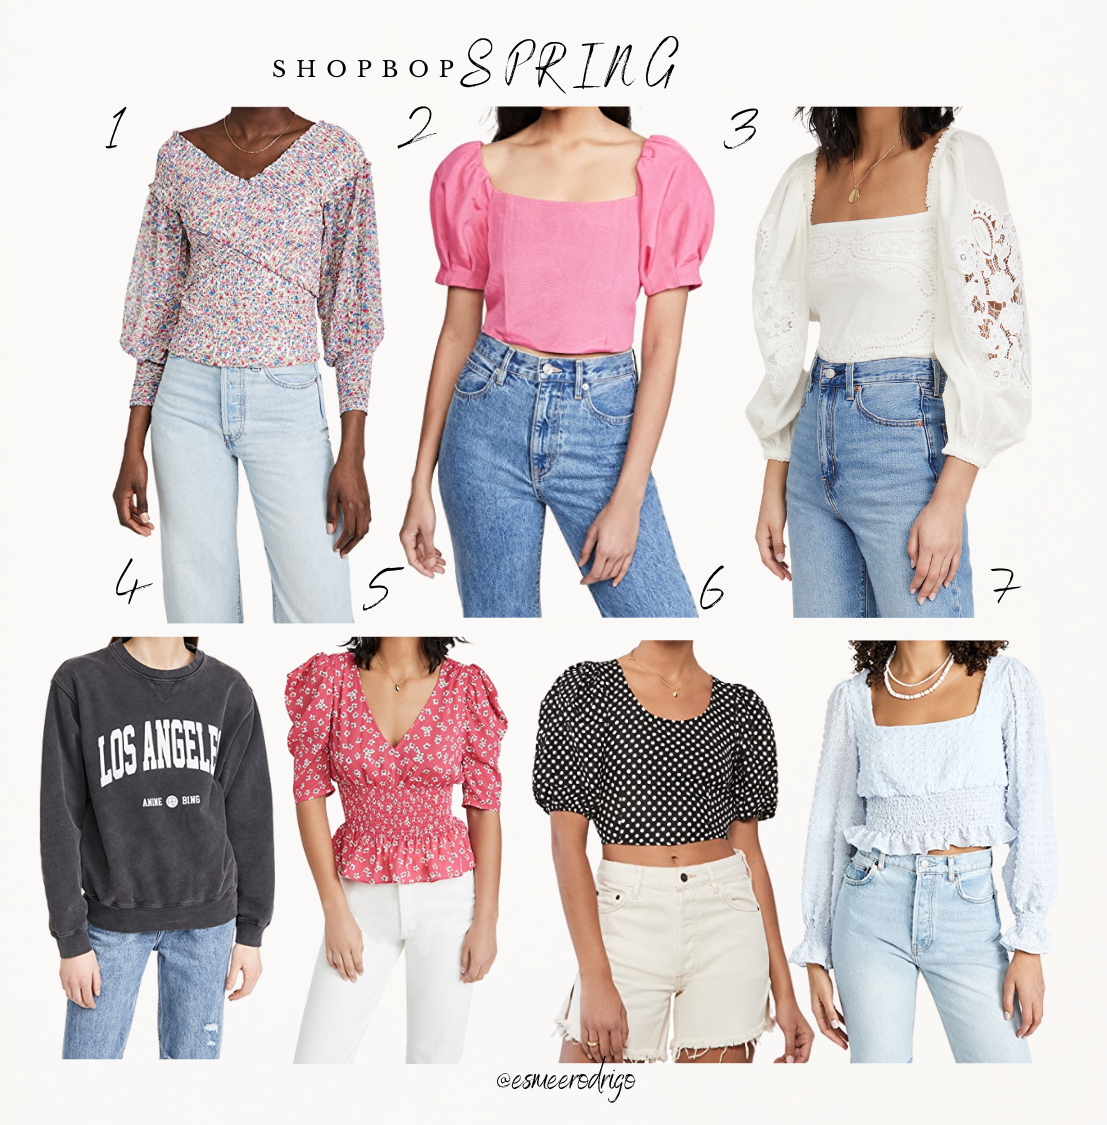 7 Musthave Tops for Spring | Shopbop